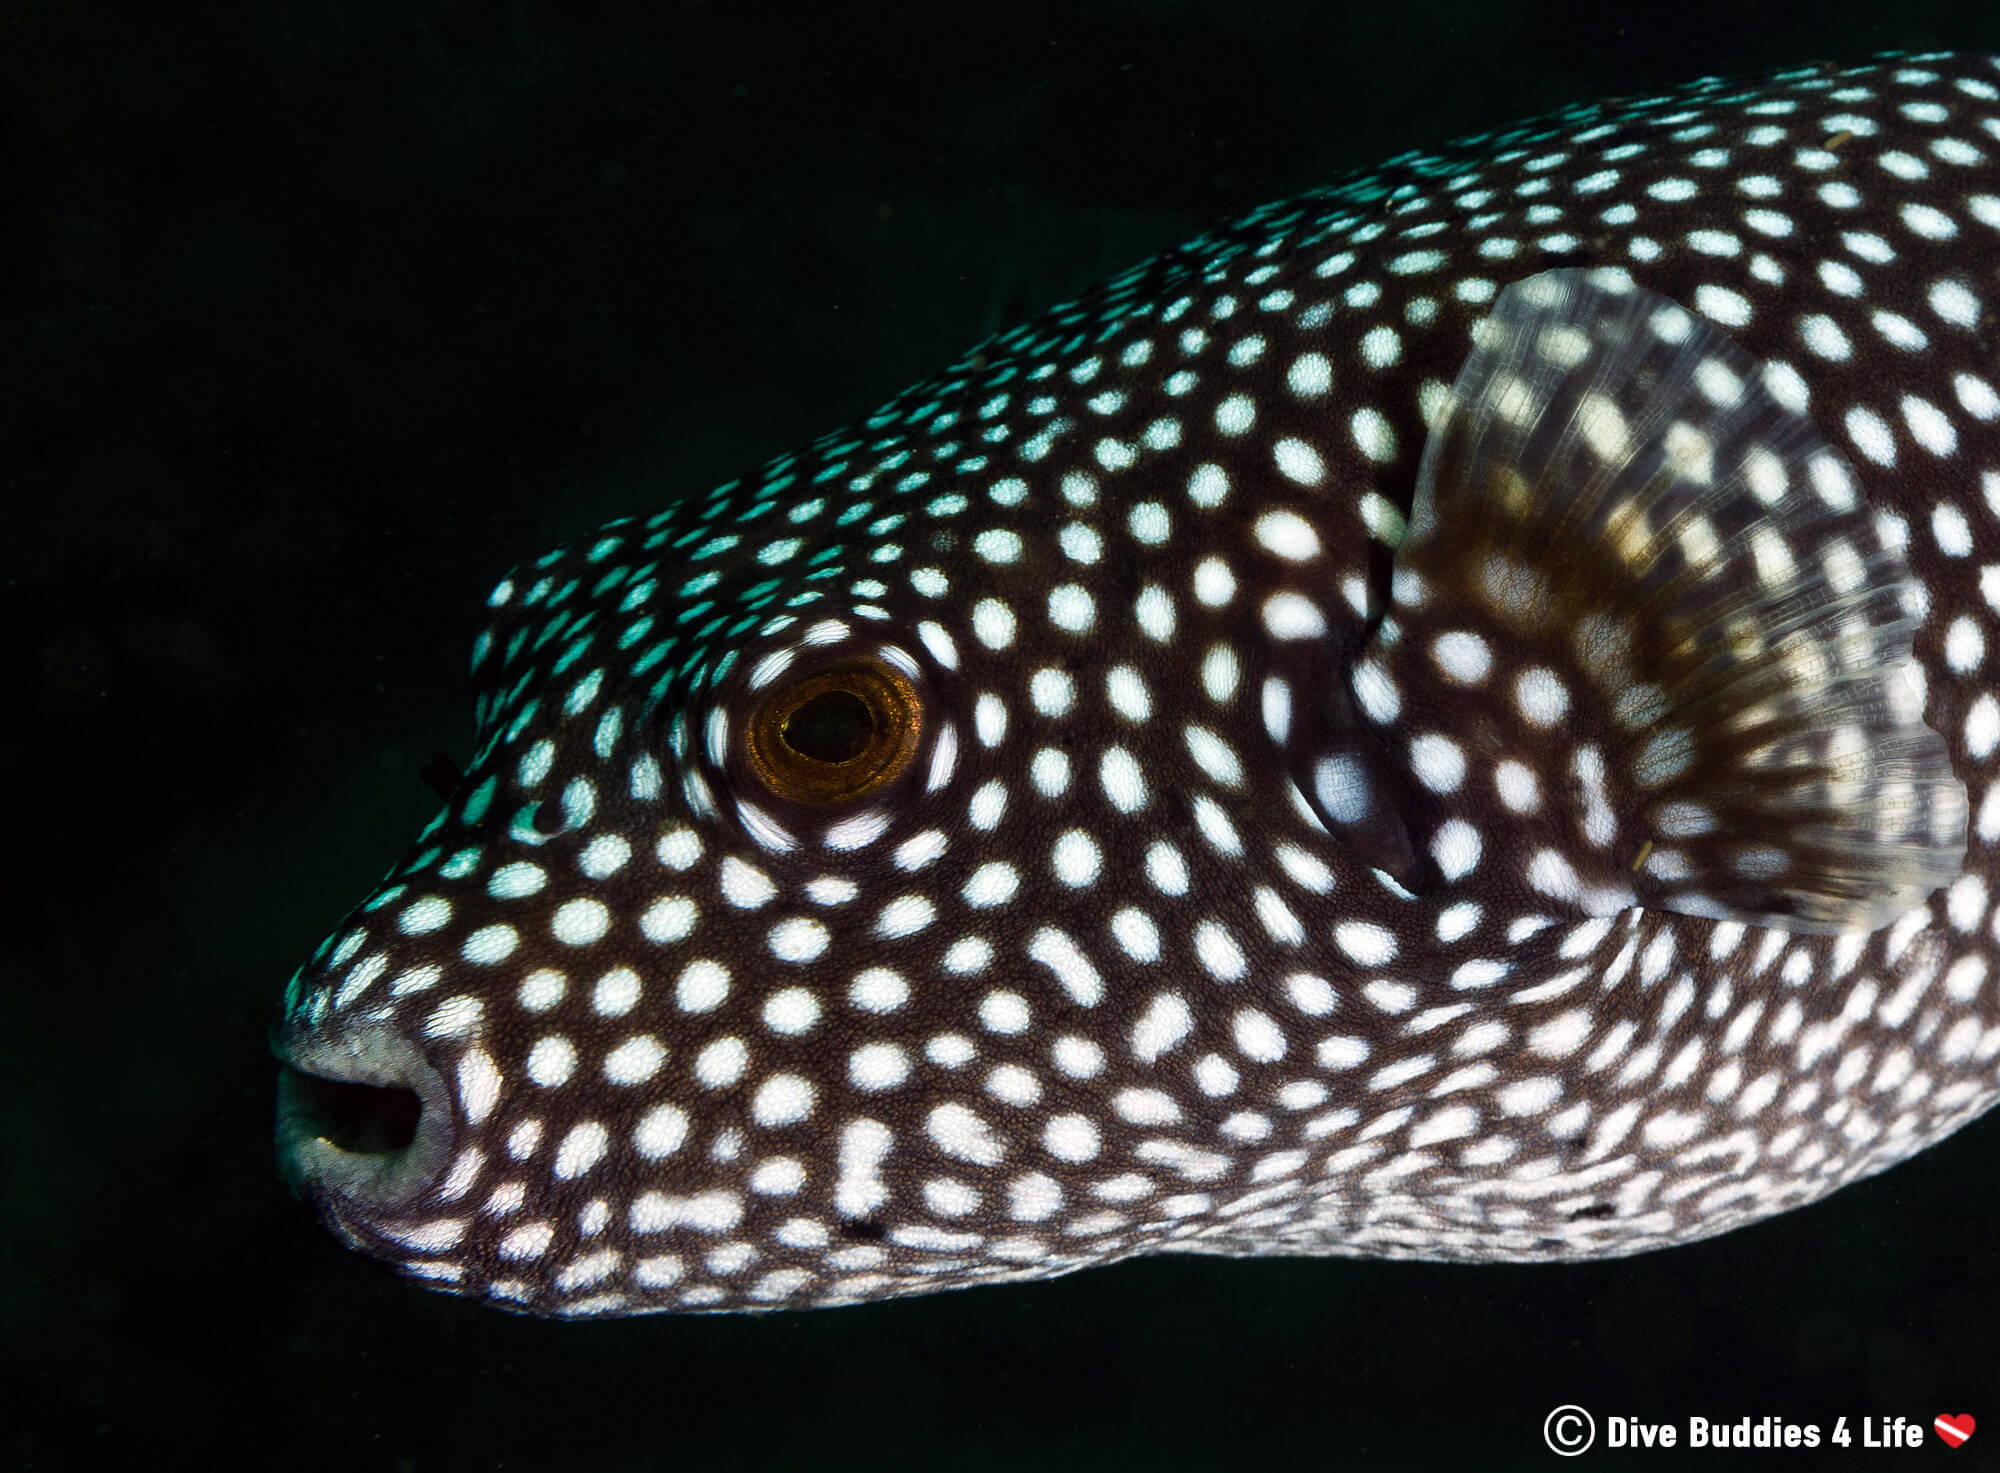 Spotted Guinea Fowl Puffer on a Night Dive in Zihuatanejo, Mexico